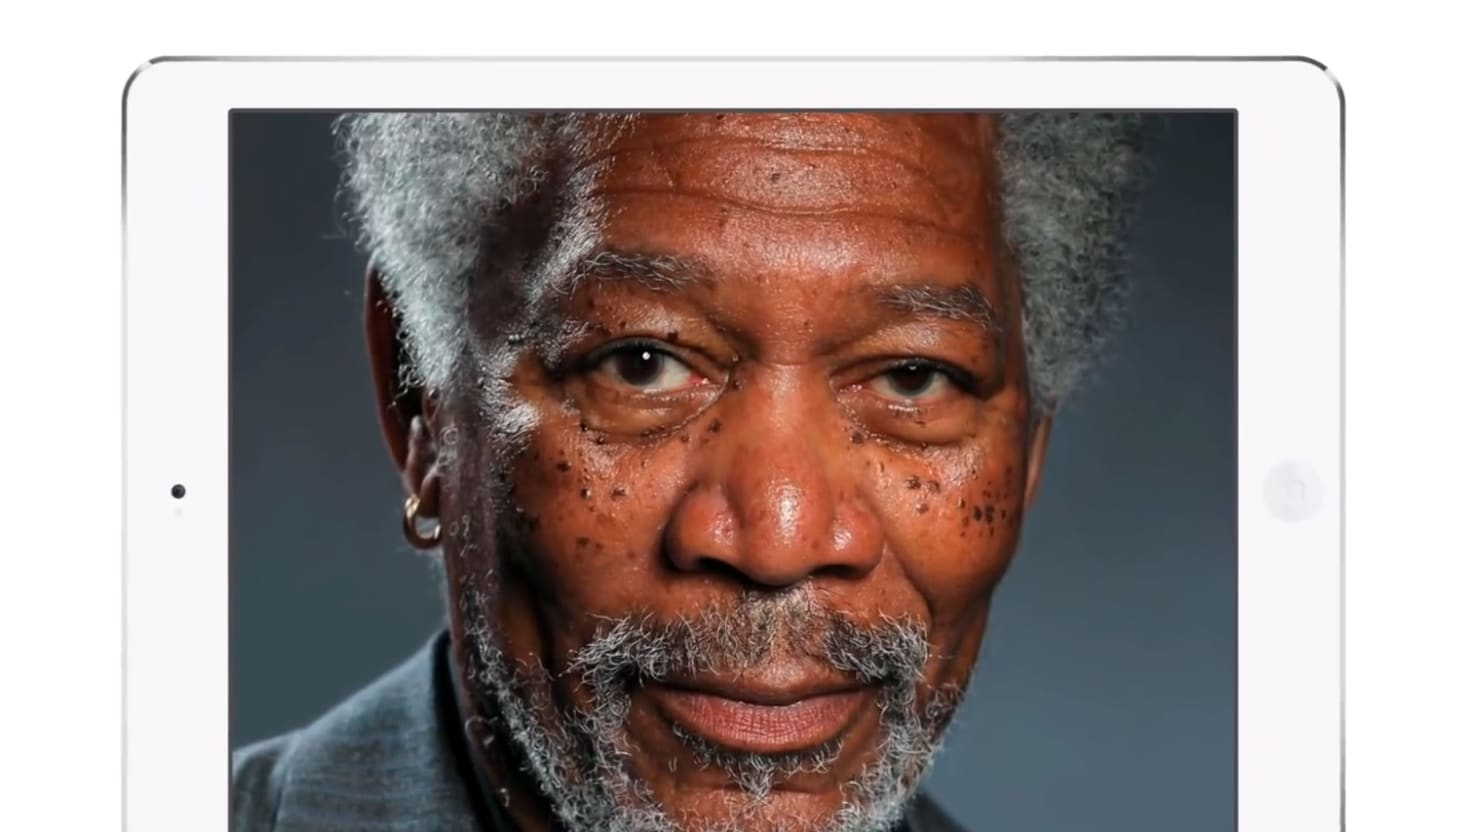 This iPad Finger Painting of Morgan Freeman Is Amazingly Realistic